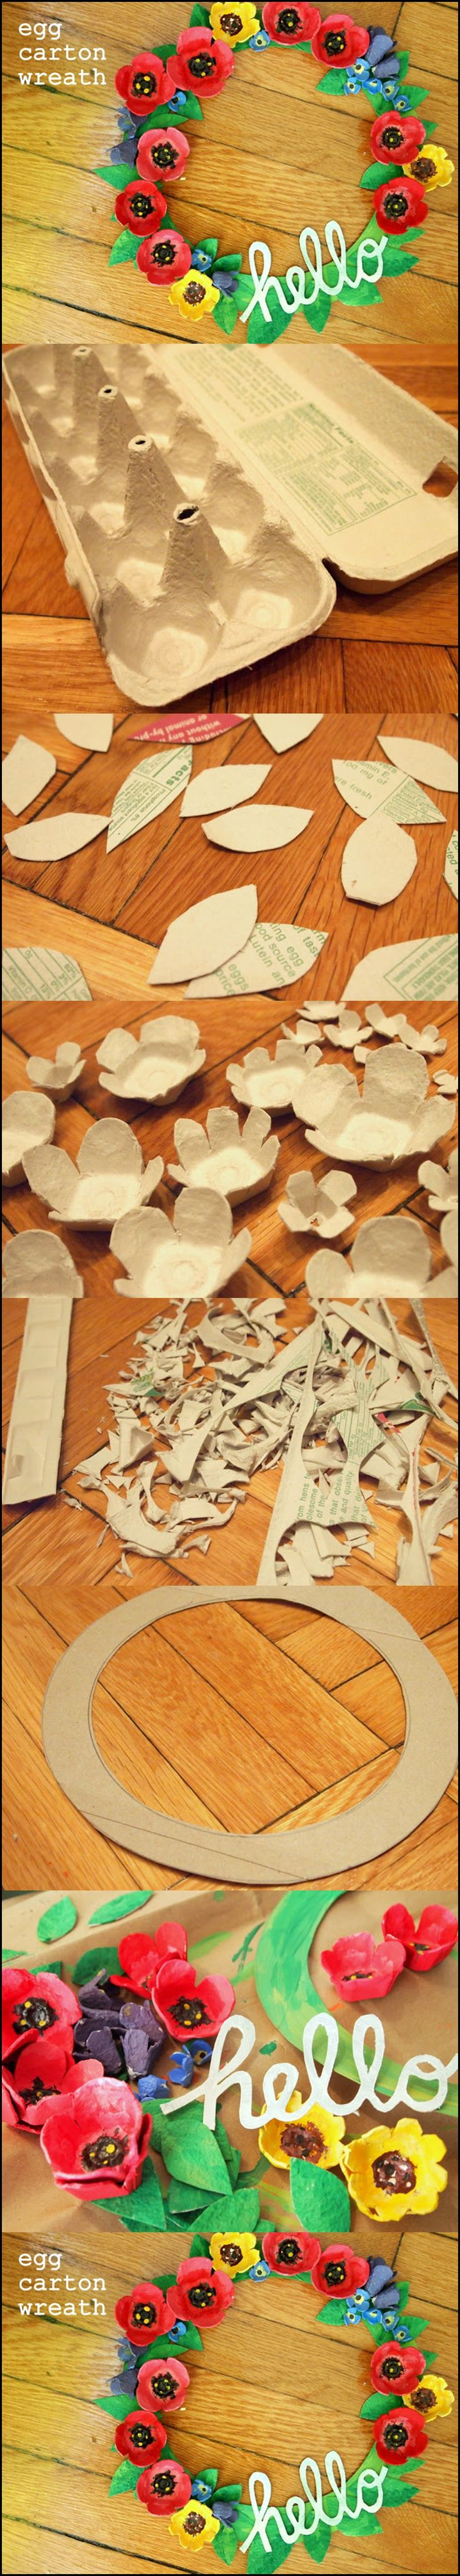 Egg carton wreath m